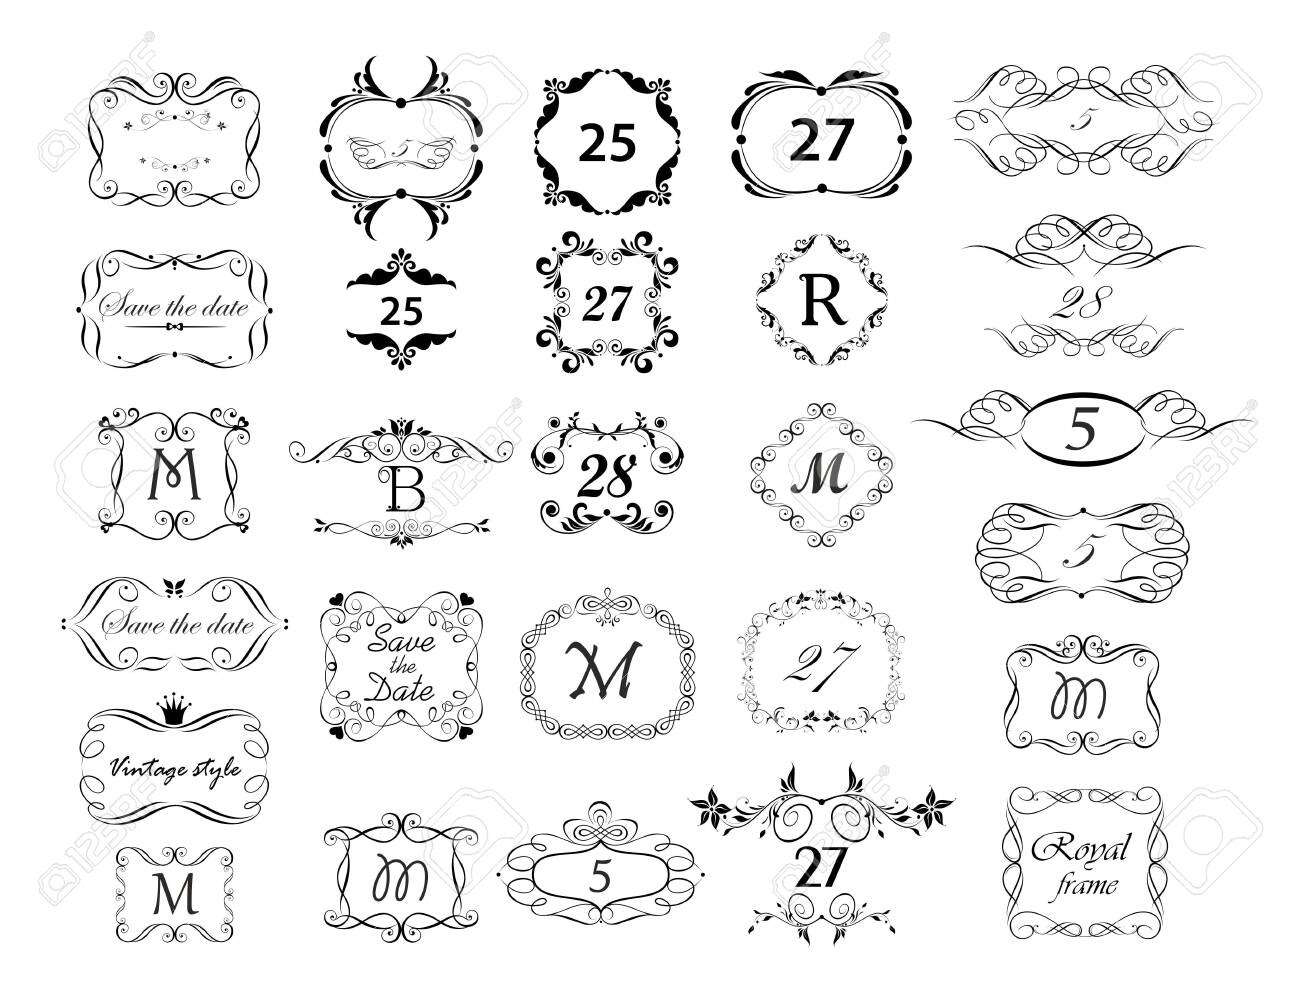 Vintage page ruler, dividers, title and headers vector set. Black and white retro design - 121232149